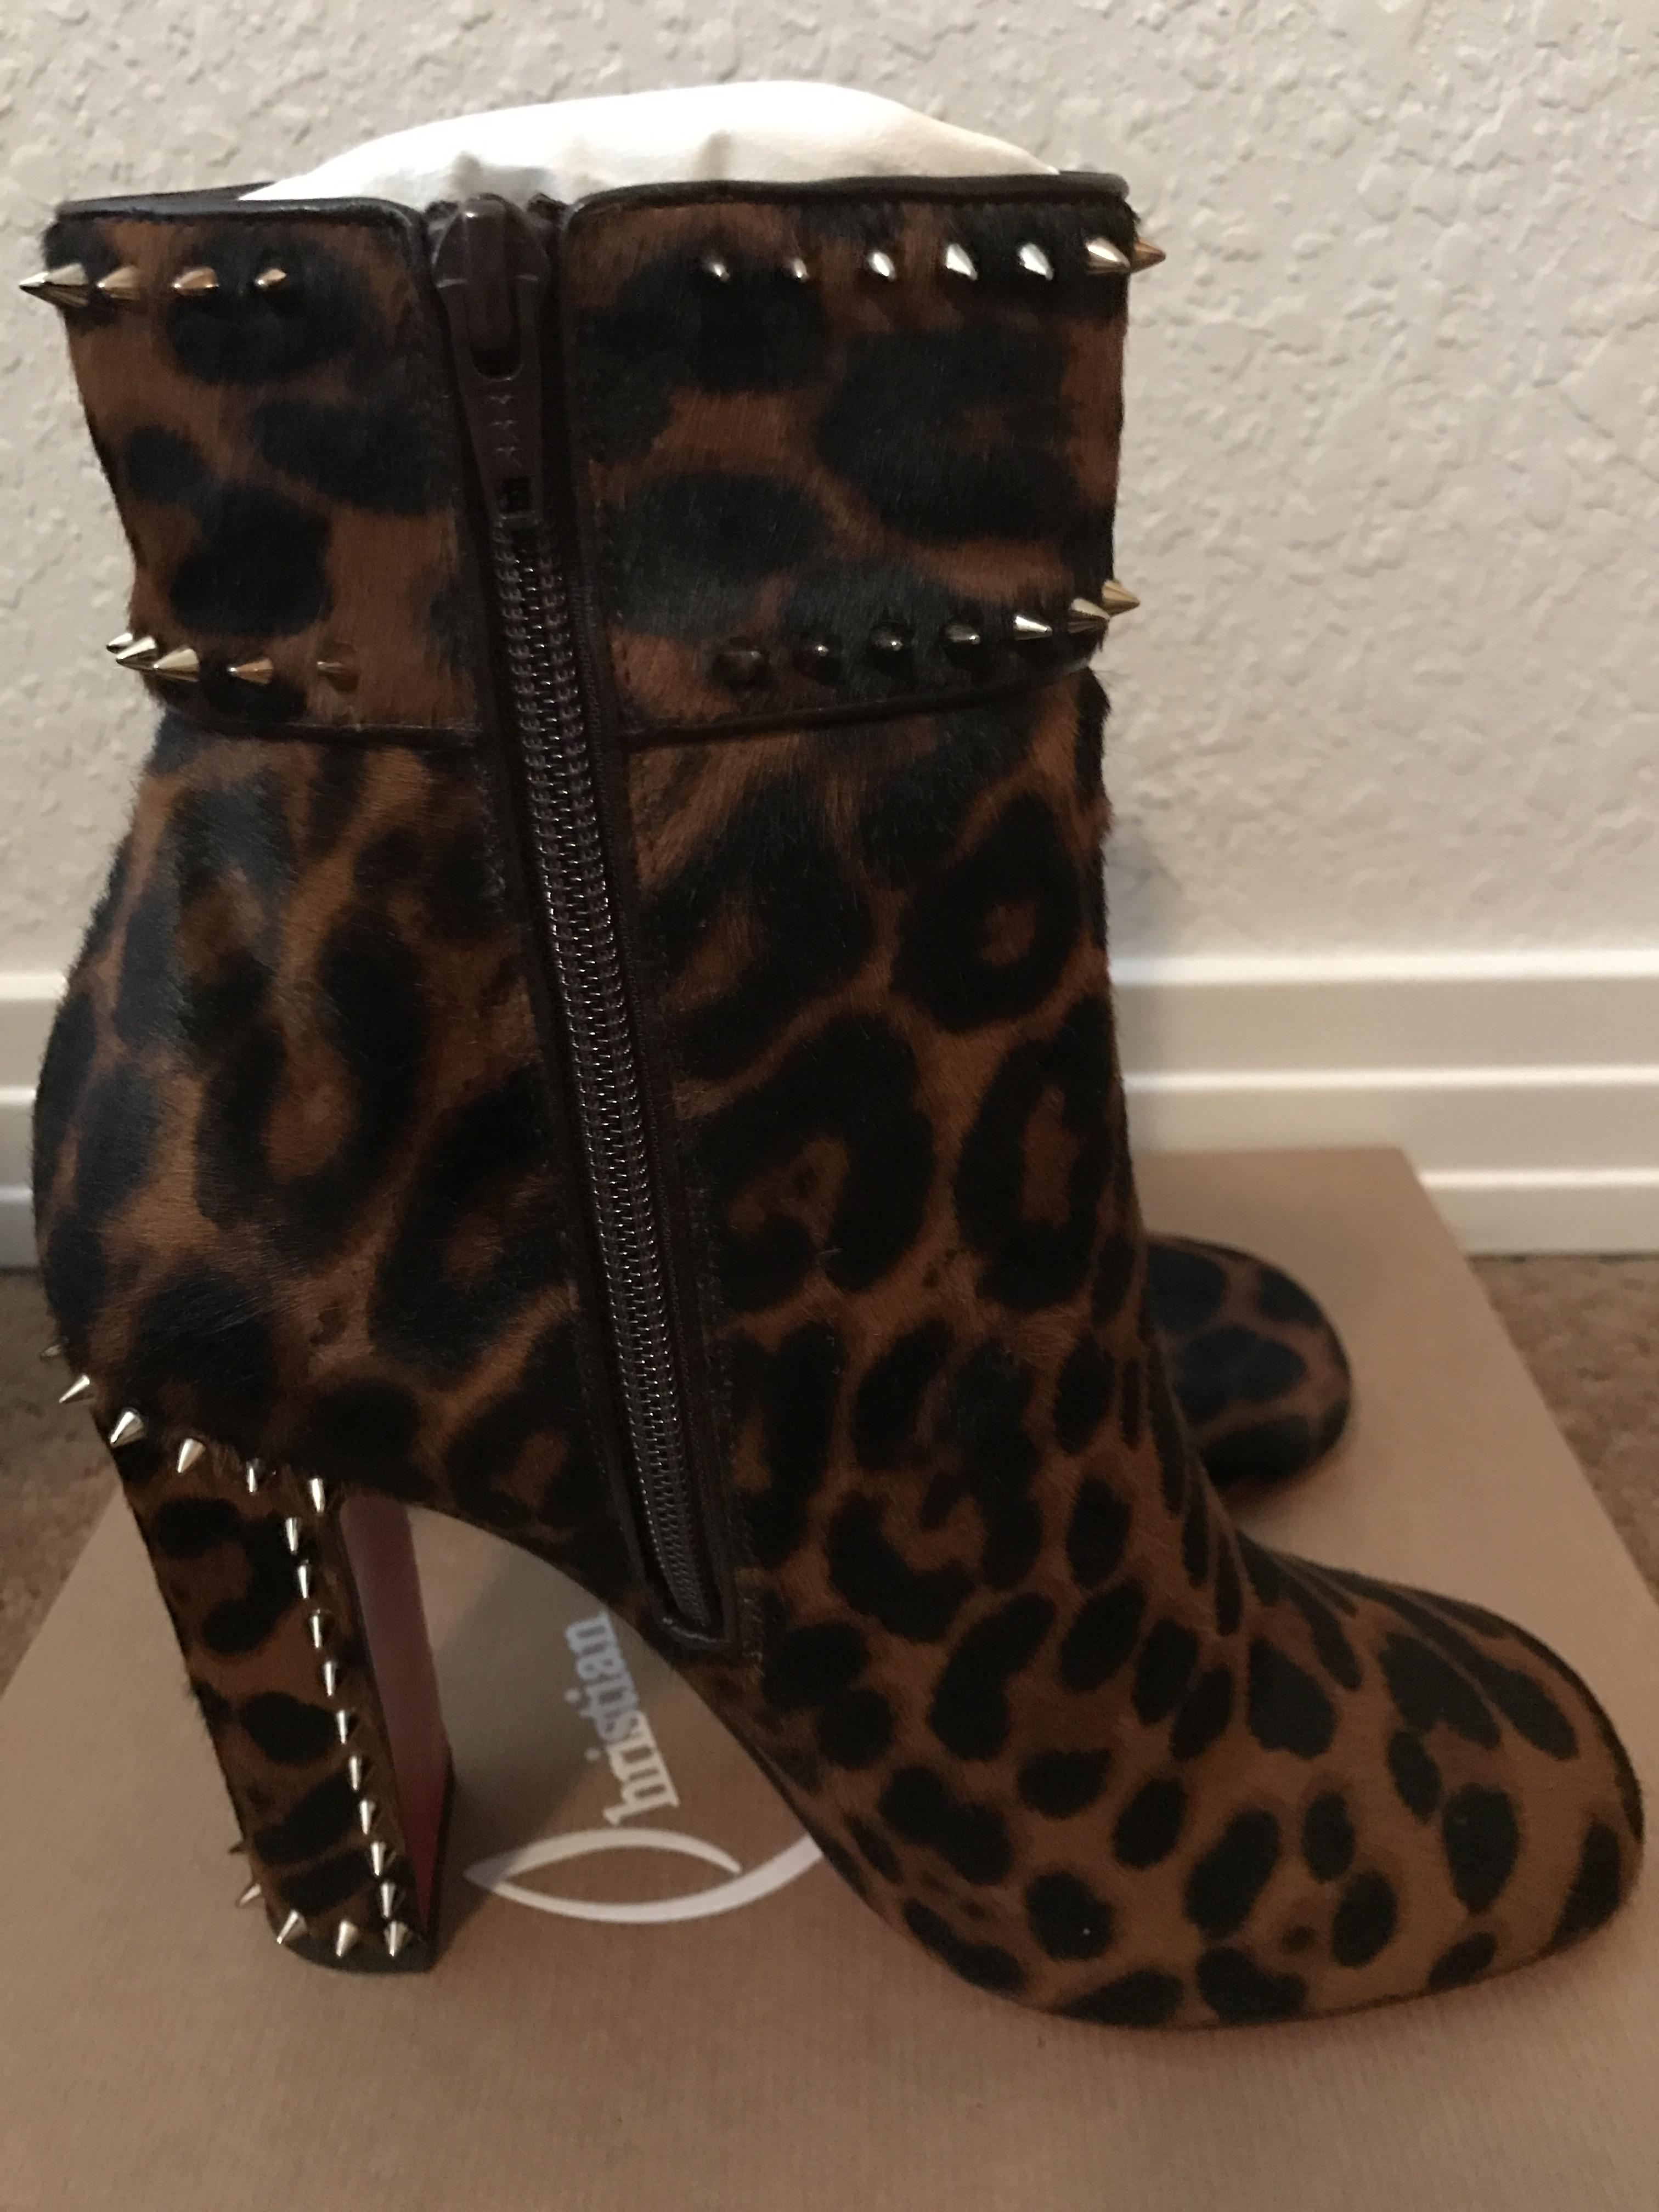 e60ed84d3a09 ... Christian Louboutin Cadra Spiked Spiked Spiked 100mm Red Sole Boots Booties  Size EU 38 ...